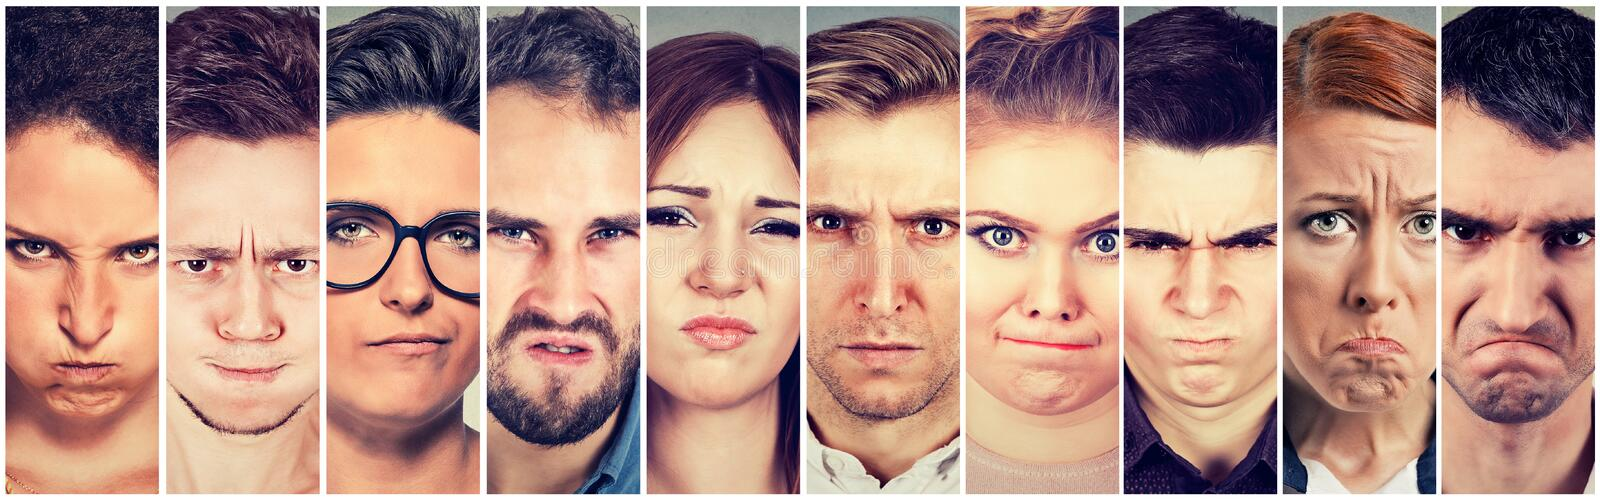 Multiethnic group of angry off people men and women royalty free stock image